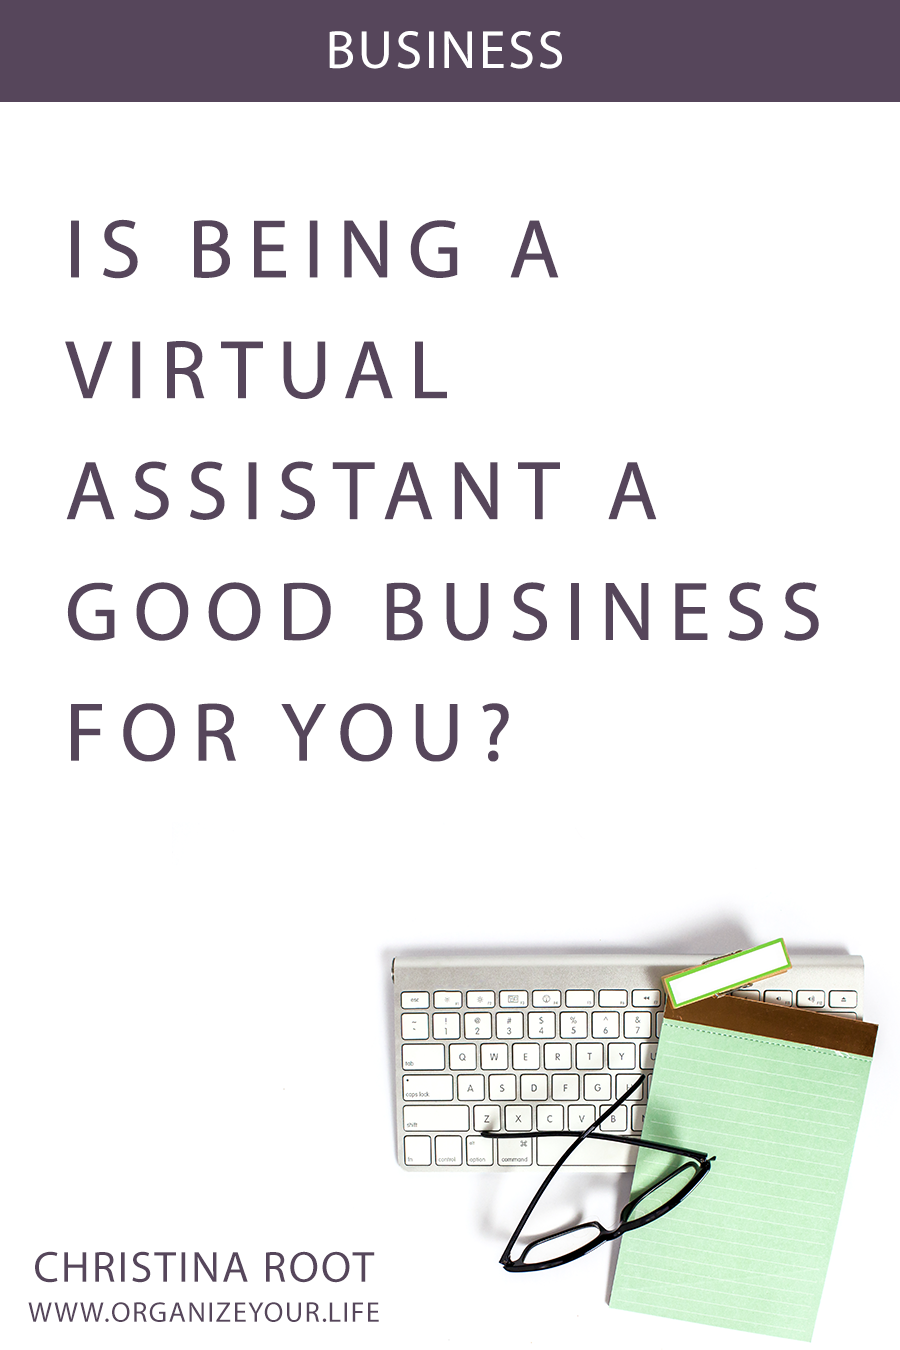 What is a virtual assistant, and should you be one?